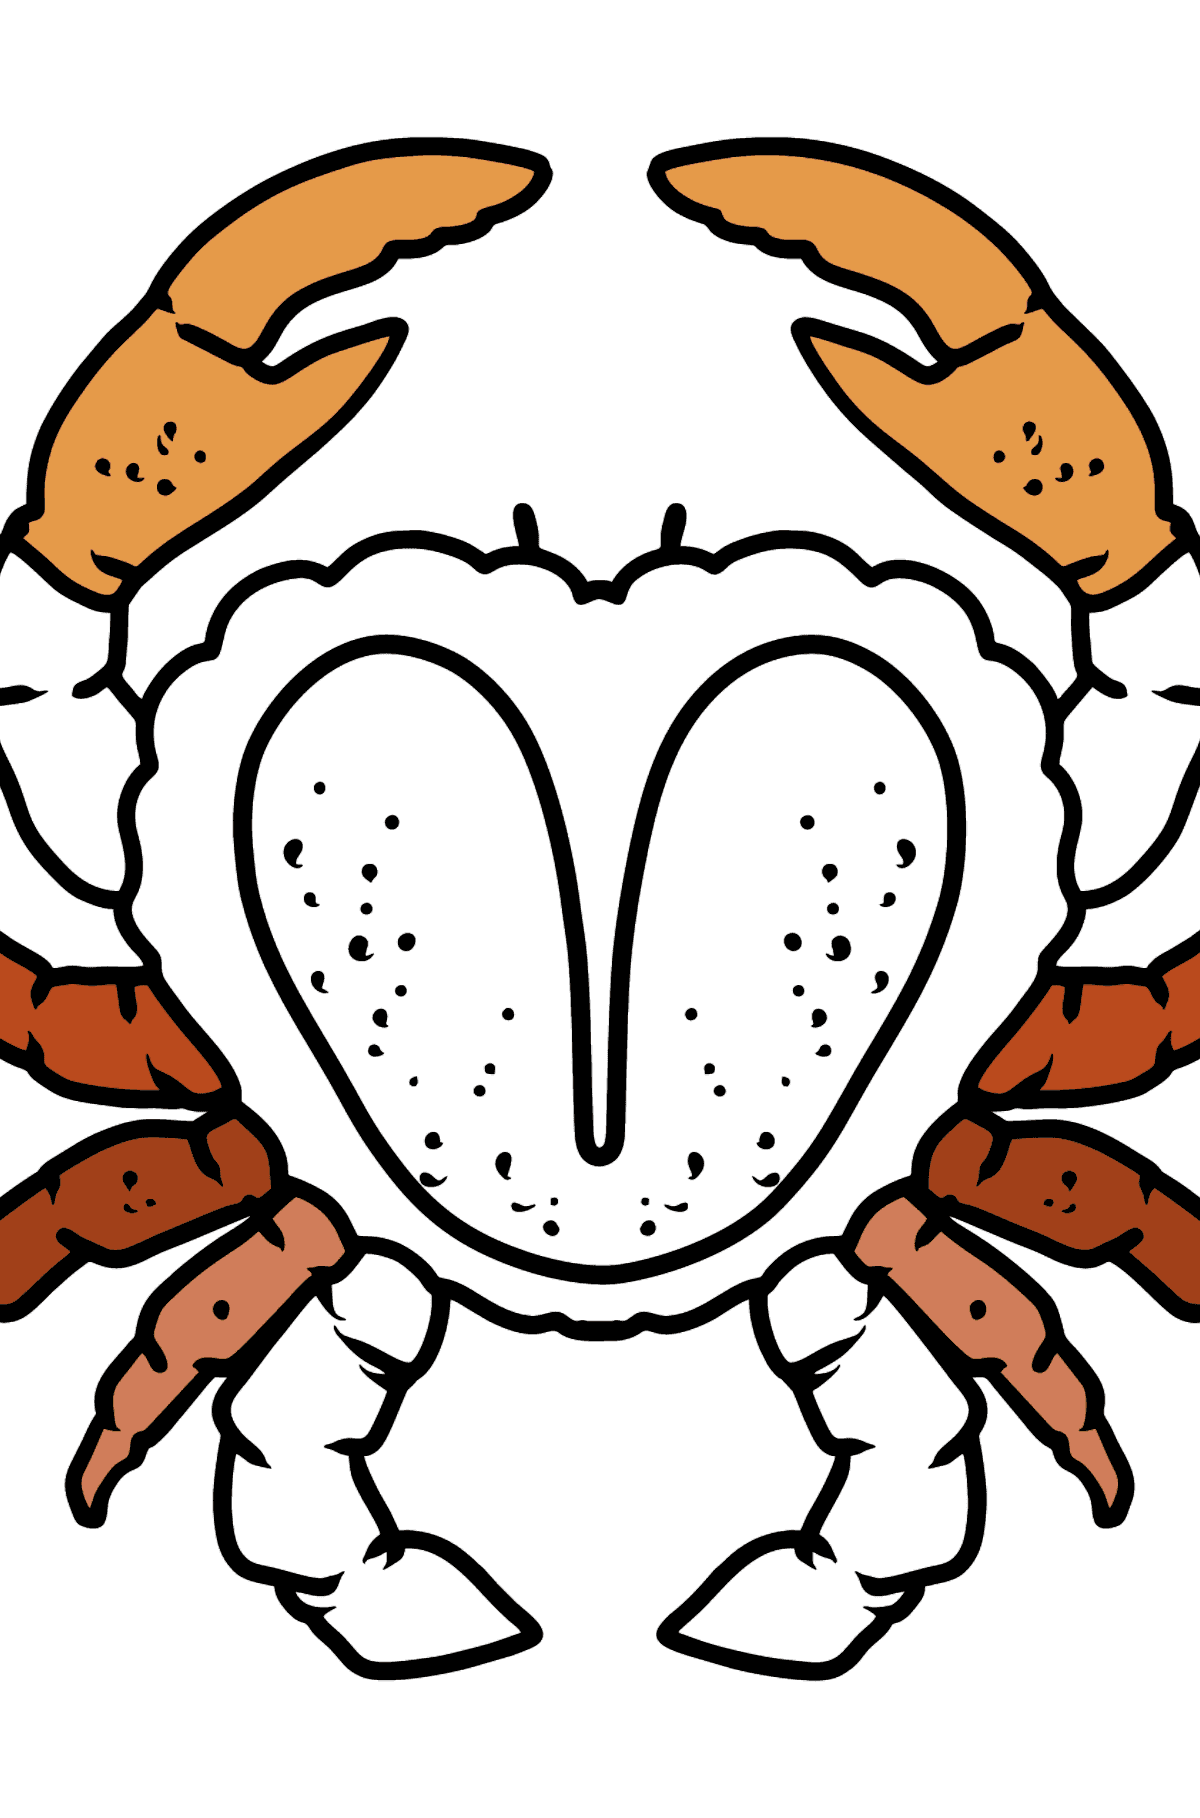 Crab coloring page - Coloring Pages for Kids